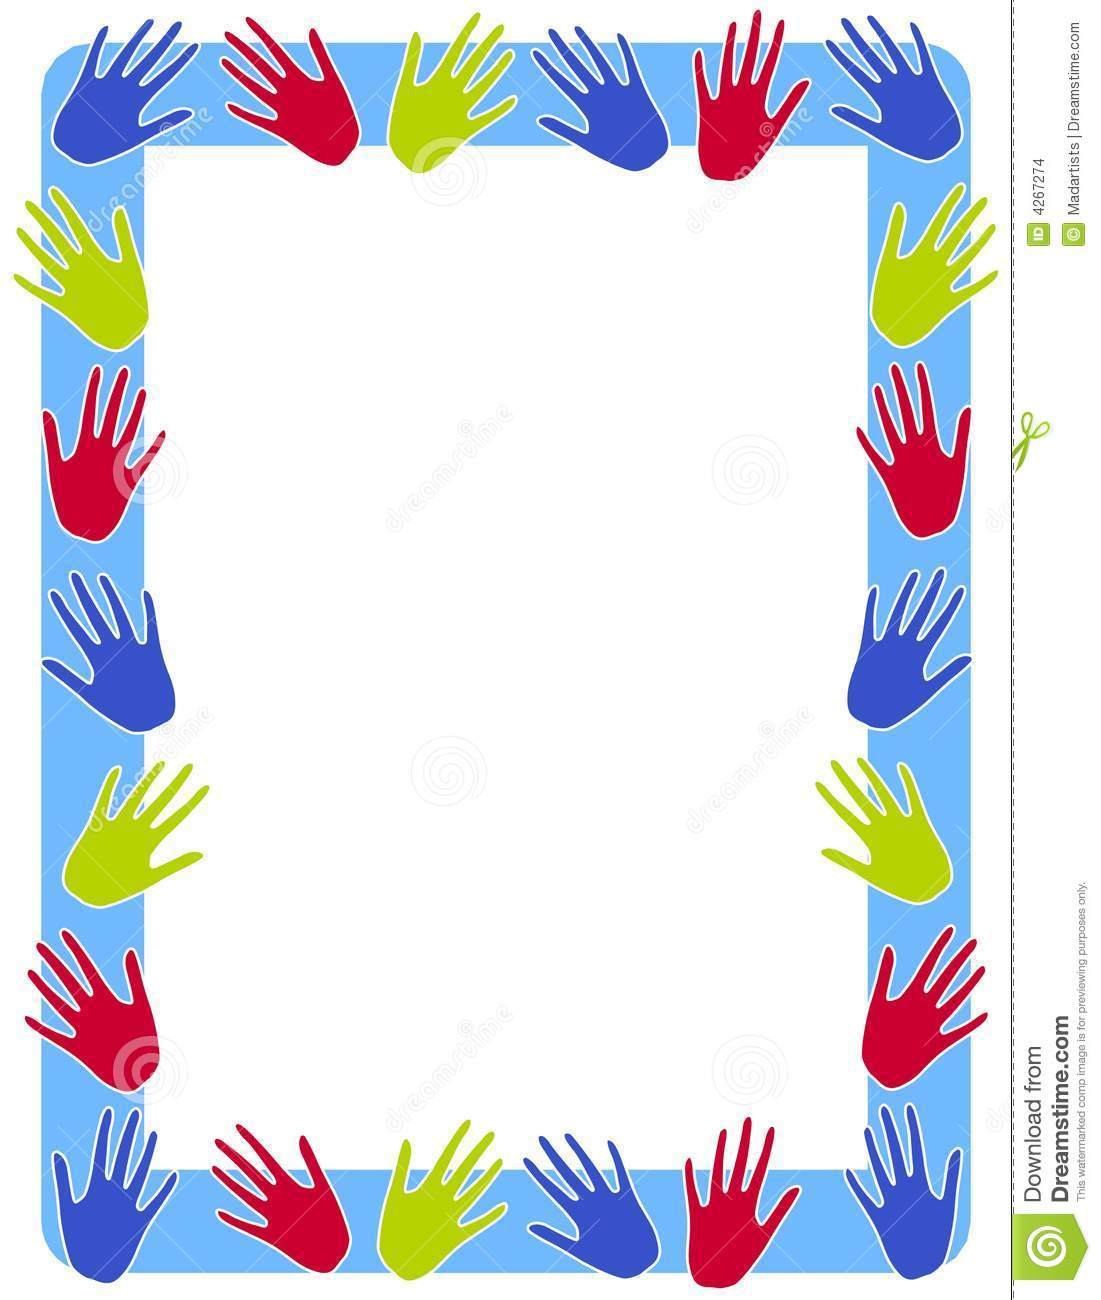 Colourful Hand Prints Frame Border Stock Illustration